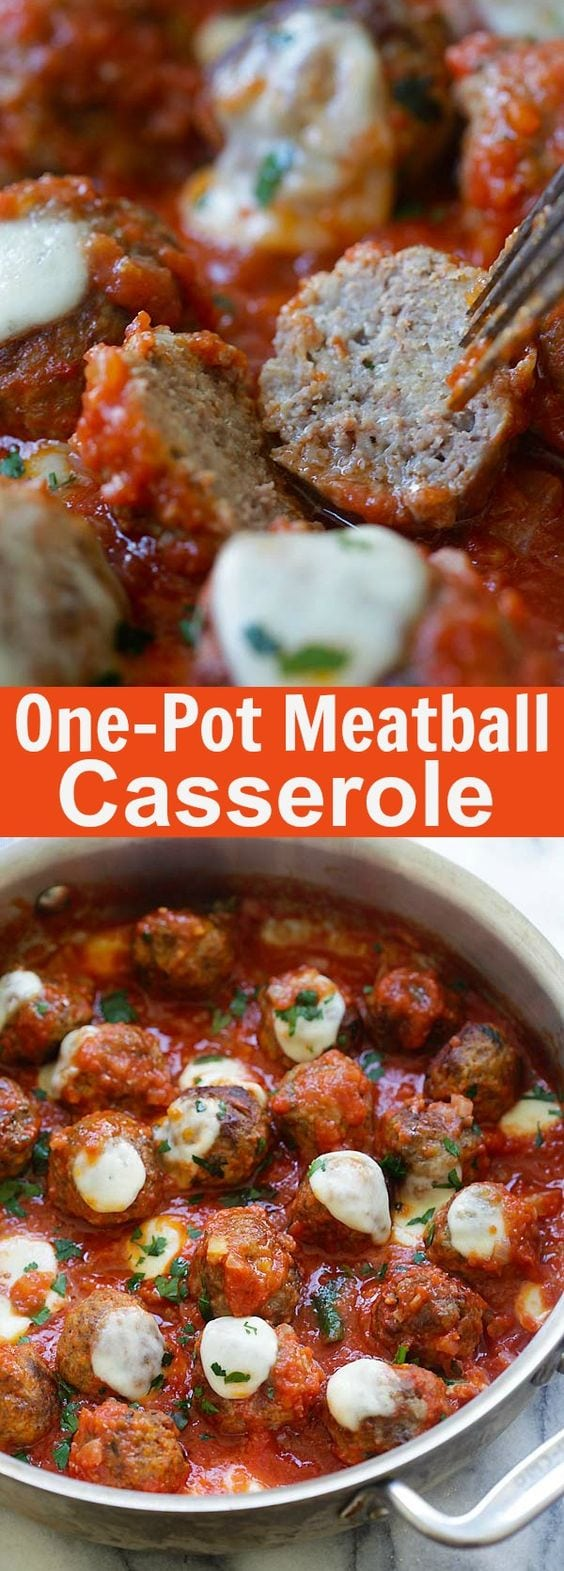 Meatball Casserole – one pot juicy and delicious meatballs in tomato sauce and topped with mozzarella cheese, homemade comfort food | rasamalaysia.com